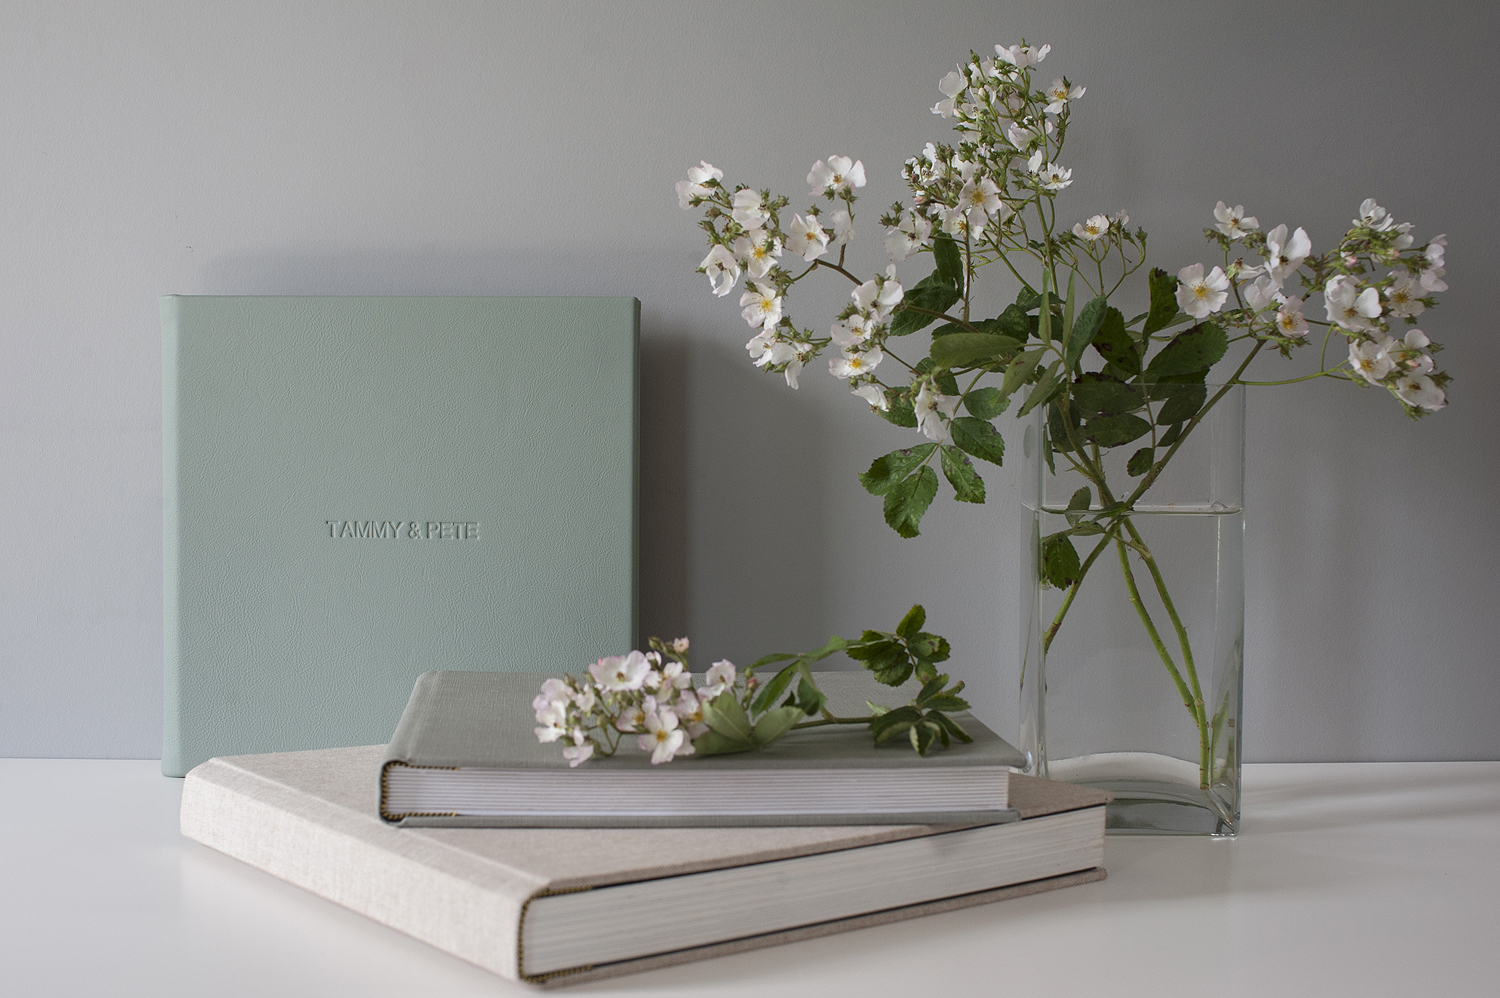 sarah fyffe photography fine art wedding albums